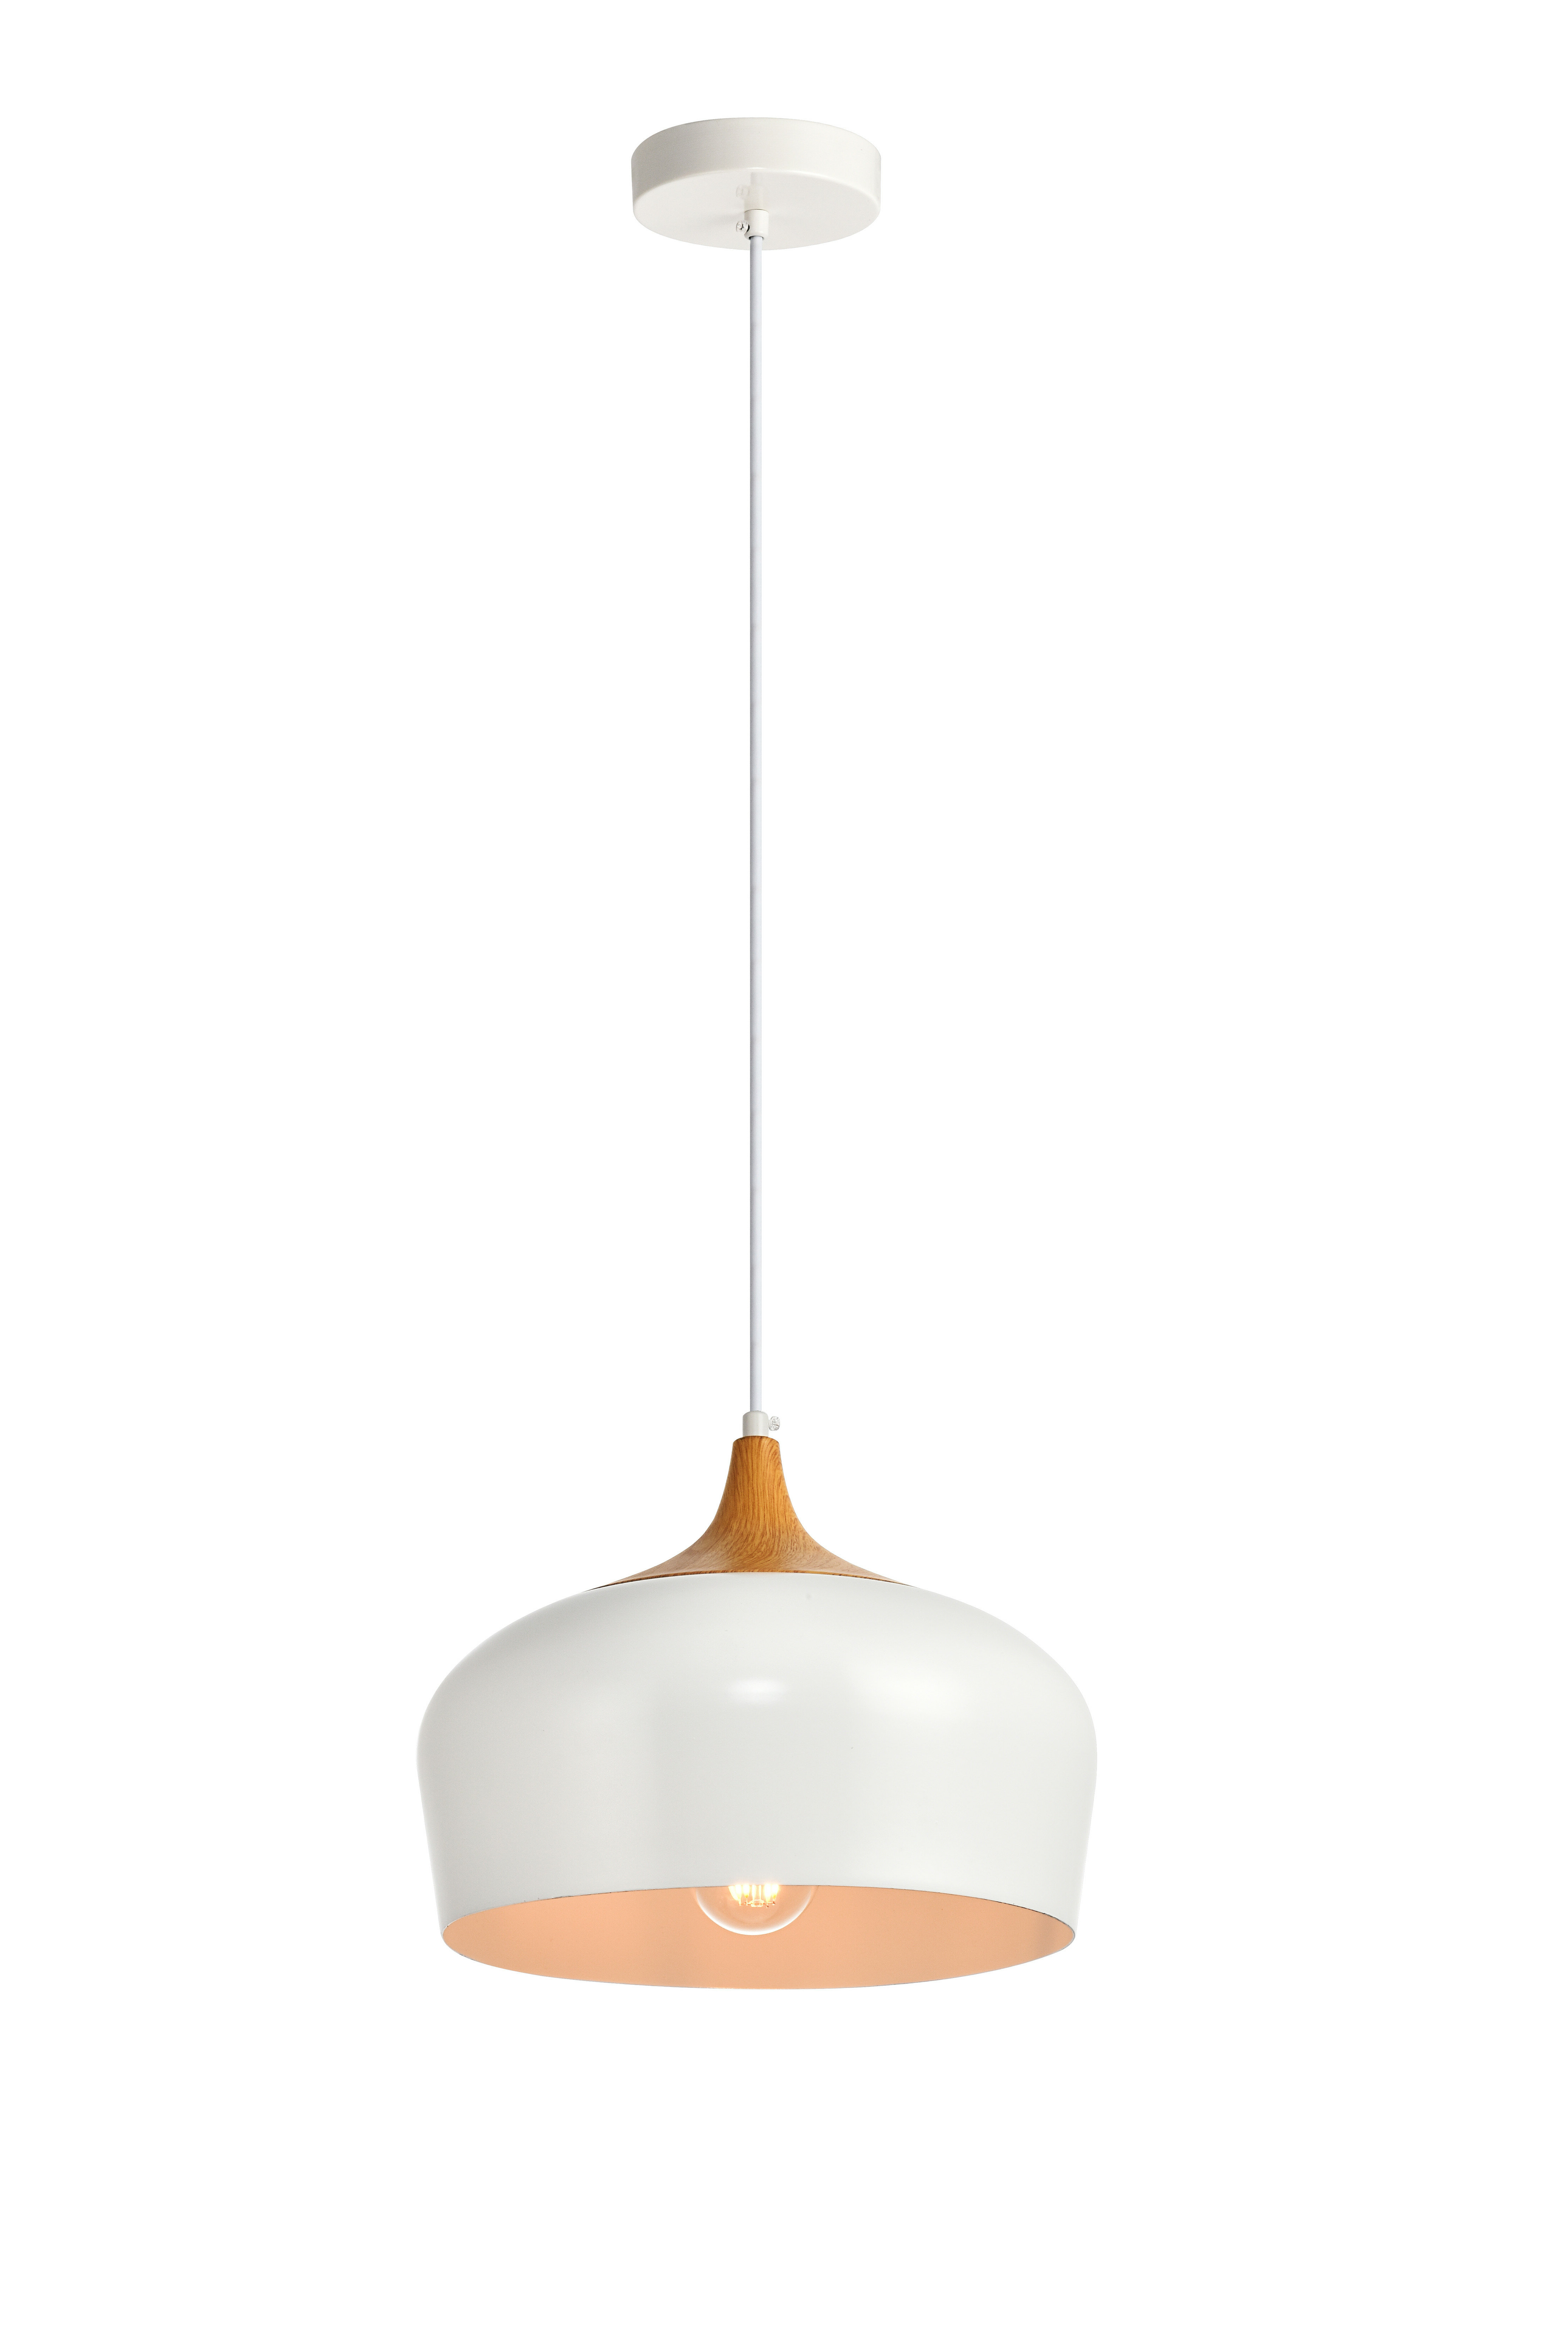 Fashionable Single Pendant Lighting You'll Love In  (View 5 of 25)